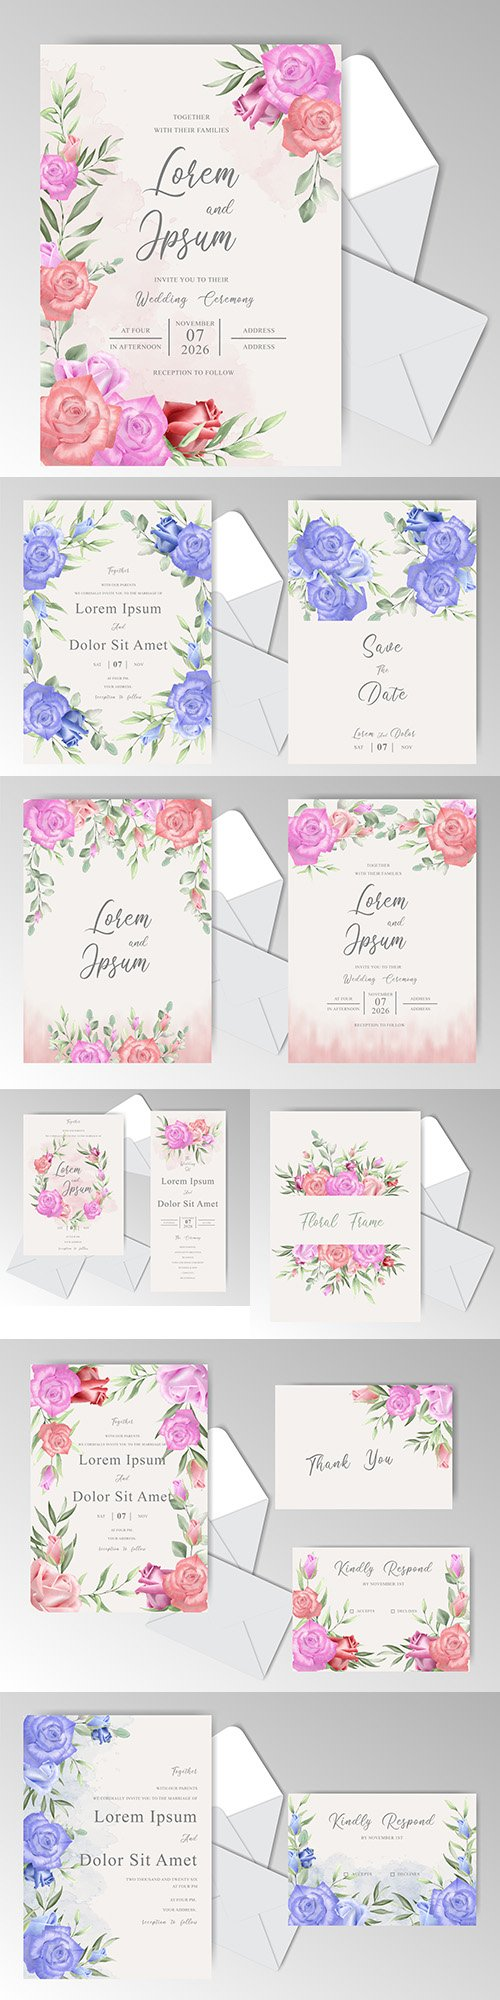 Wedding floral watercolor decorative invitations 19